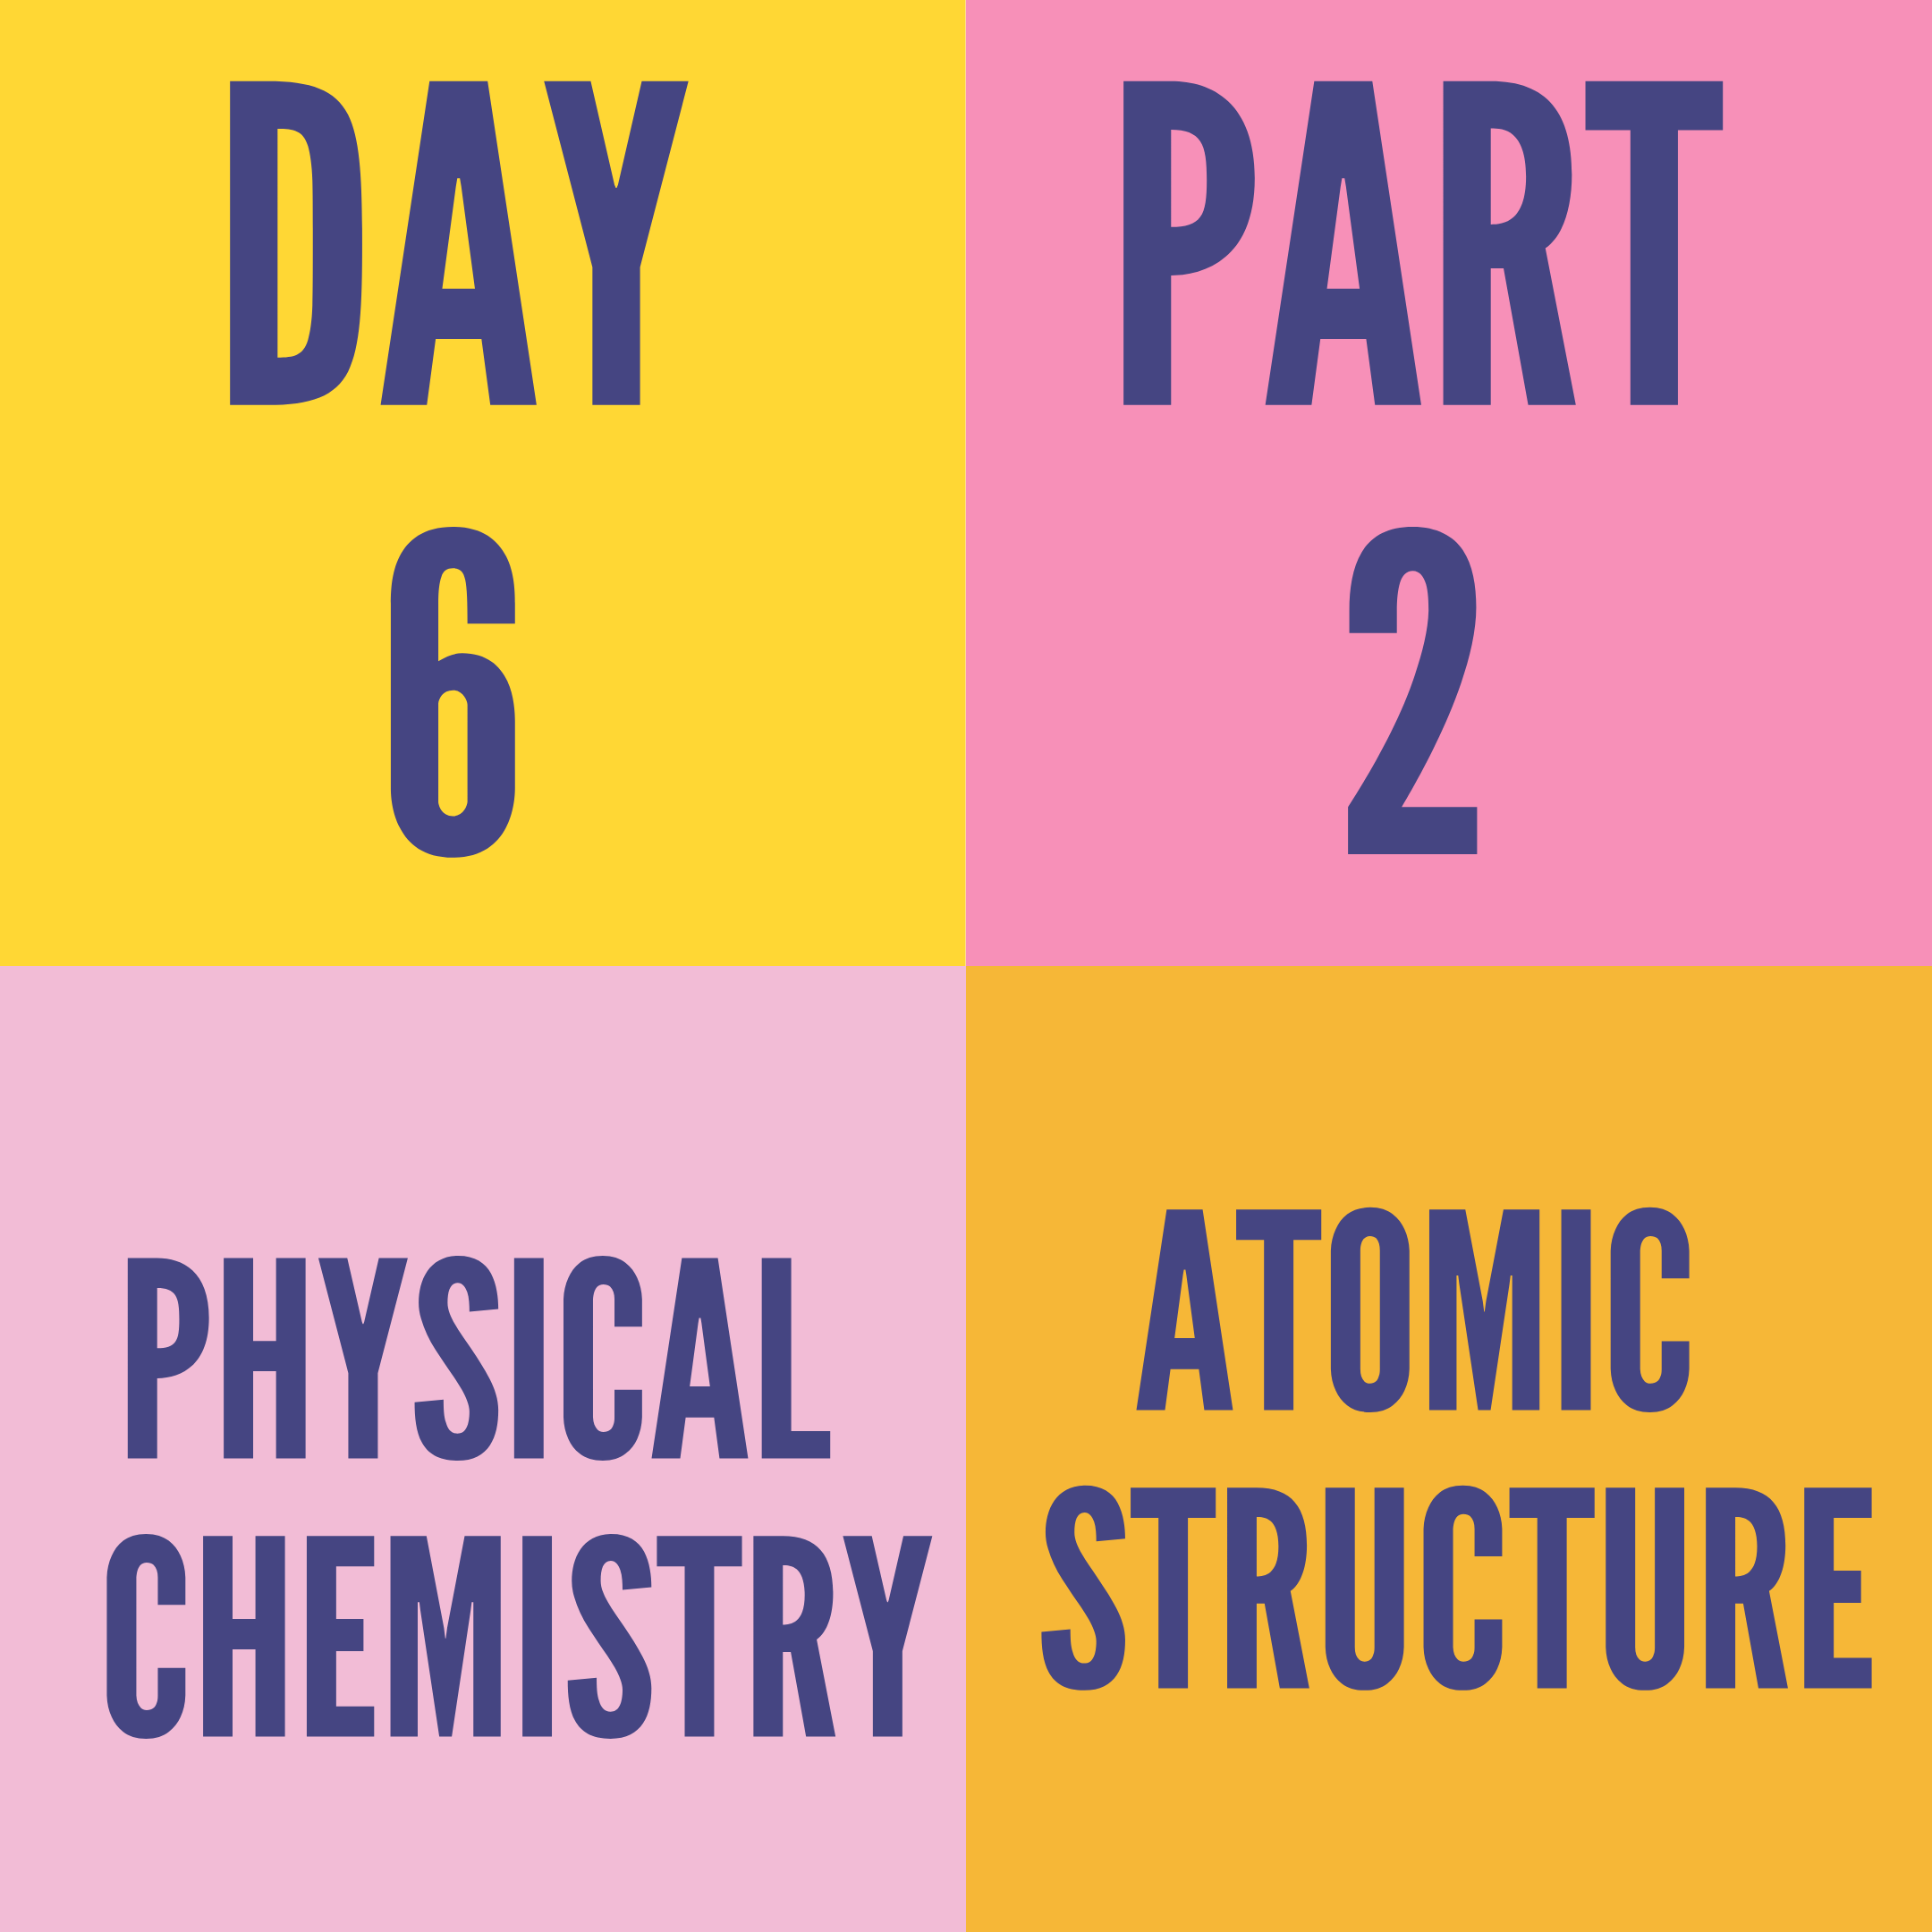 DAY-6 PART-2 ATOMIC STRUCTURE